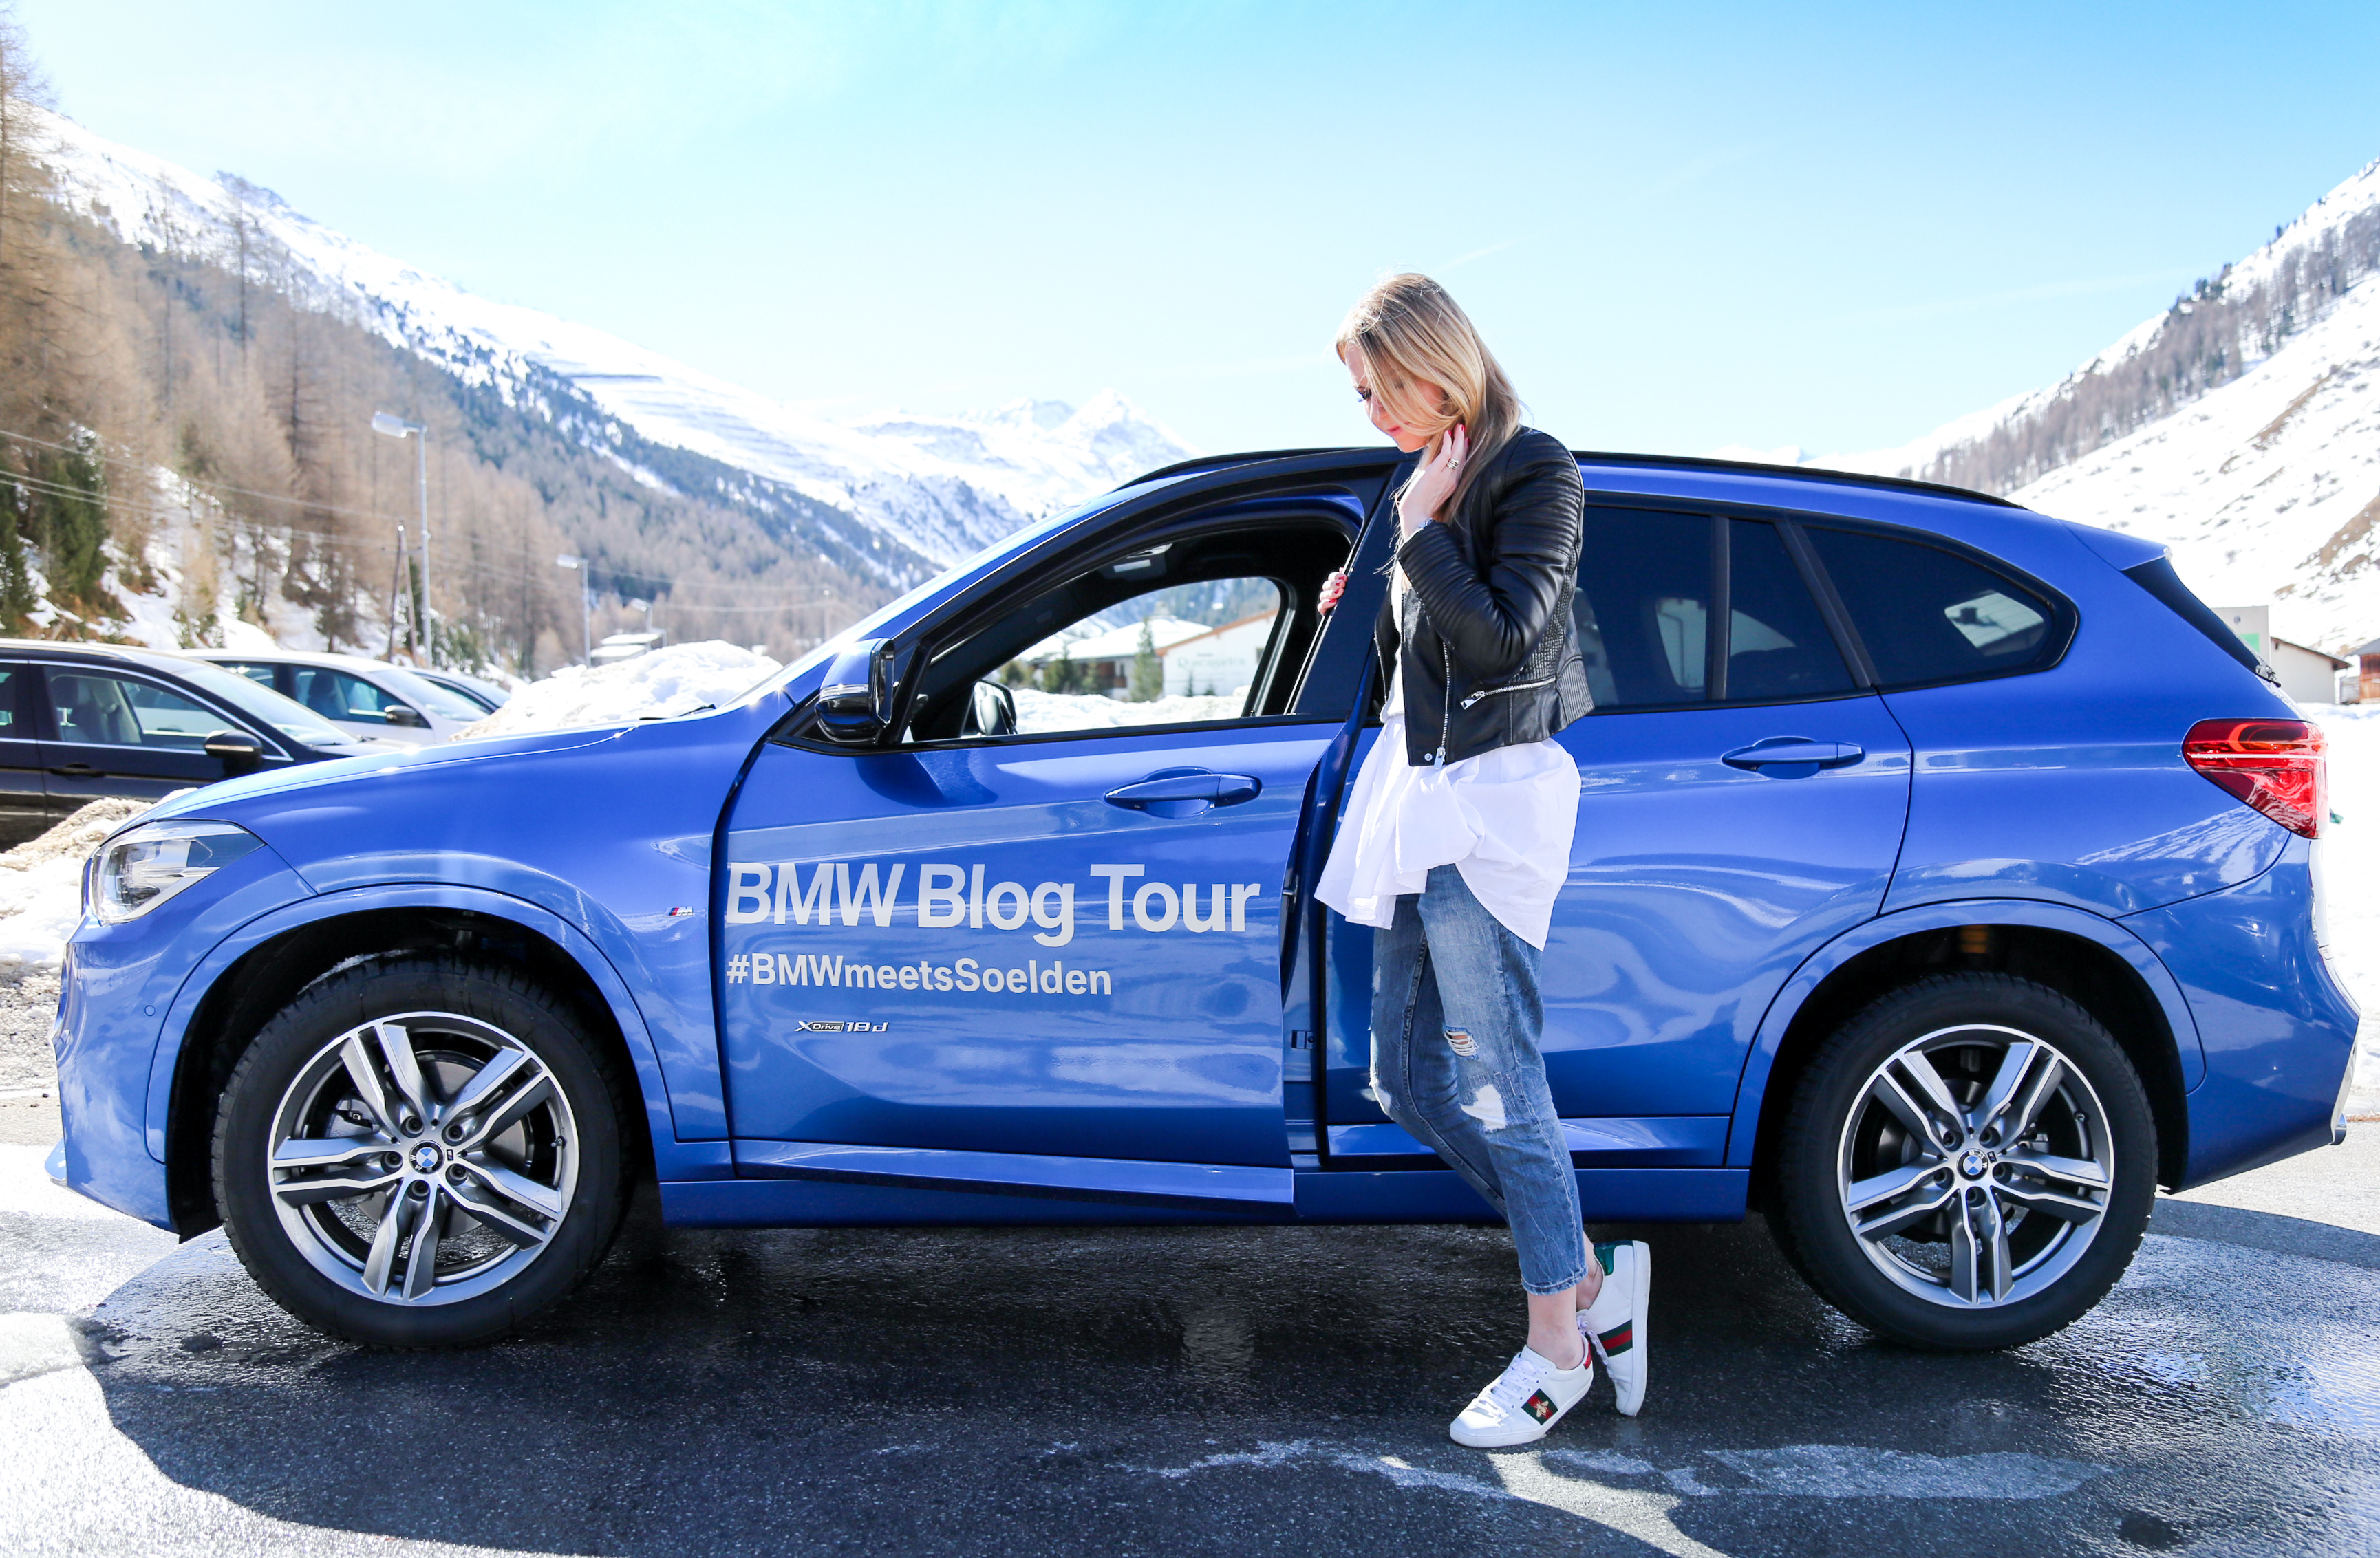 Travel Diary der BMW Blog Tour mit dem BMW X1 Blogger Alpen Ötztal Berge Mountains Wellness Hotel Längenfeld AquaDome Sauna Jenni PepperAndGold Reise Kurzurlaub Ausflug